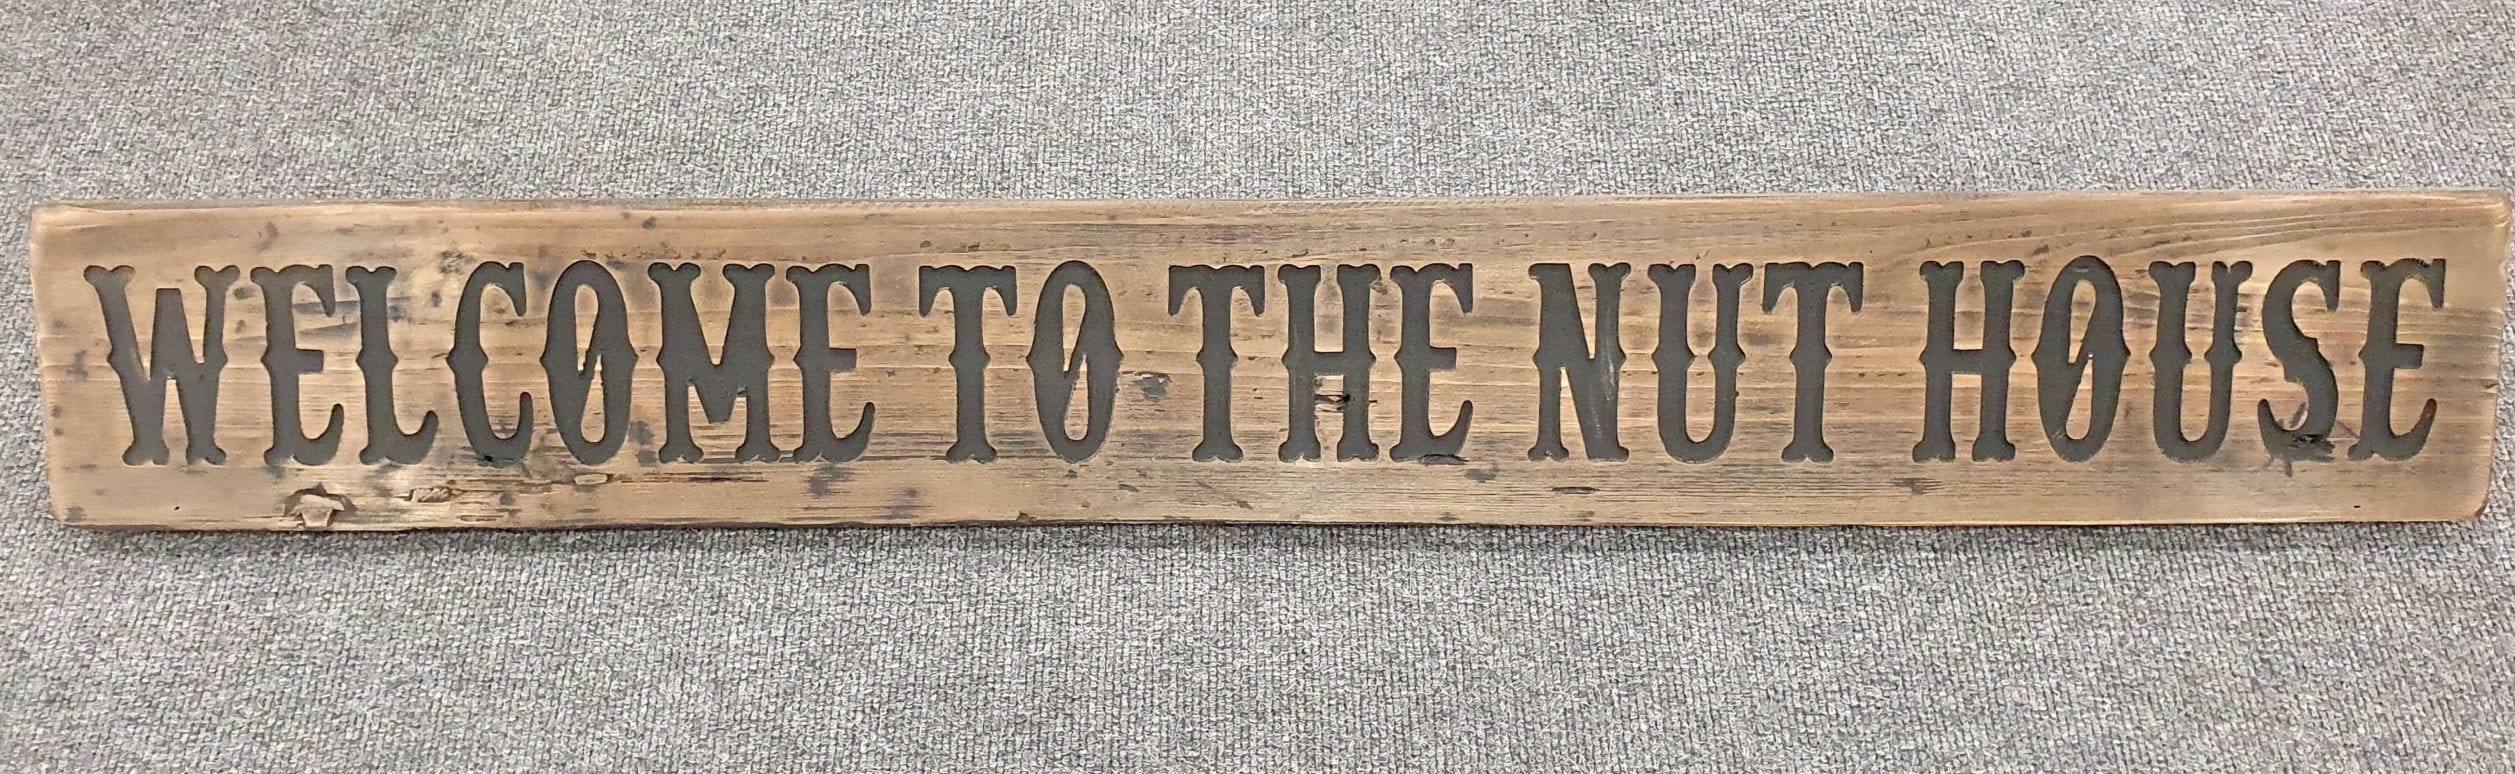 A Rustic Wooden Plaque quoting Welcome to the nut house, engraved in capital letters